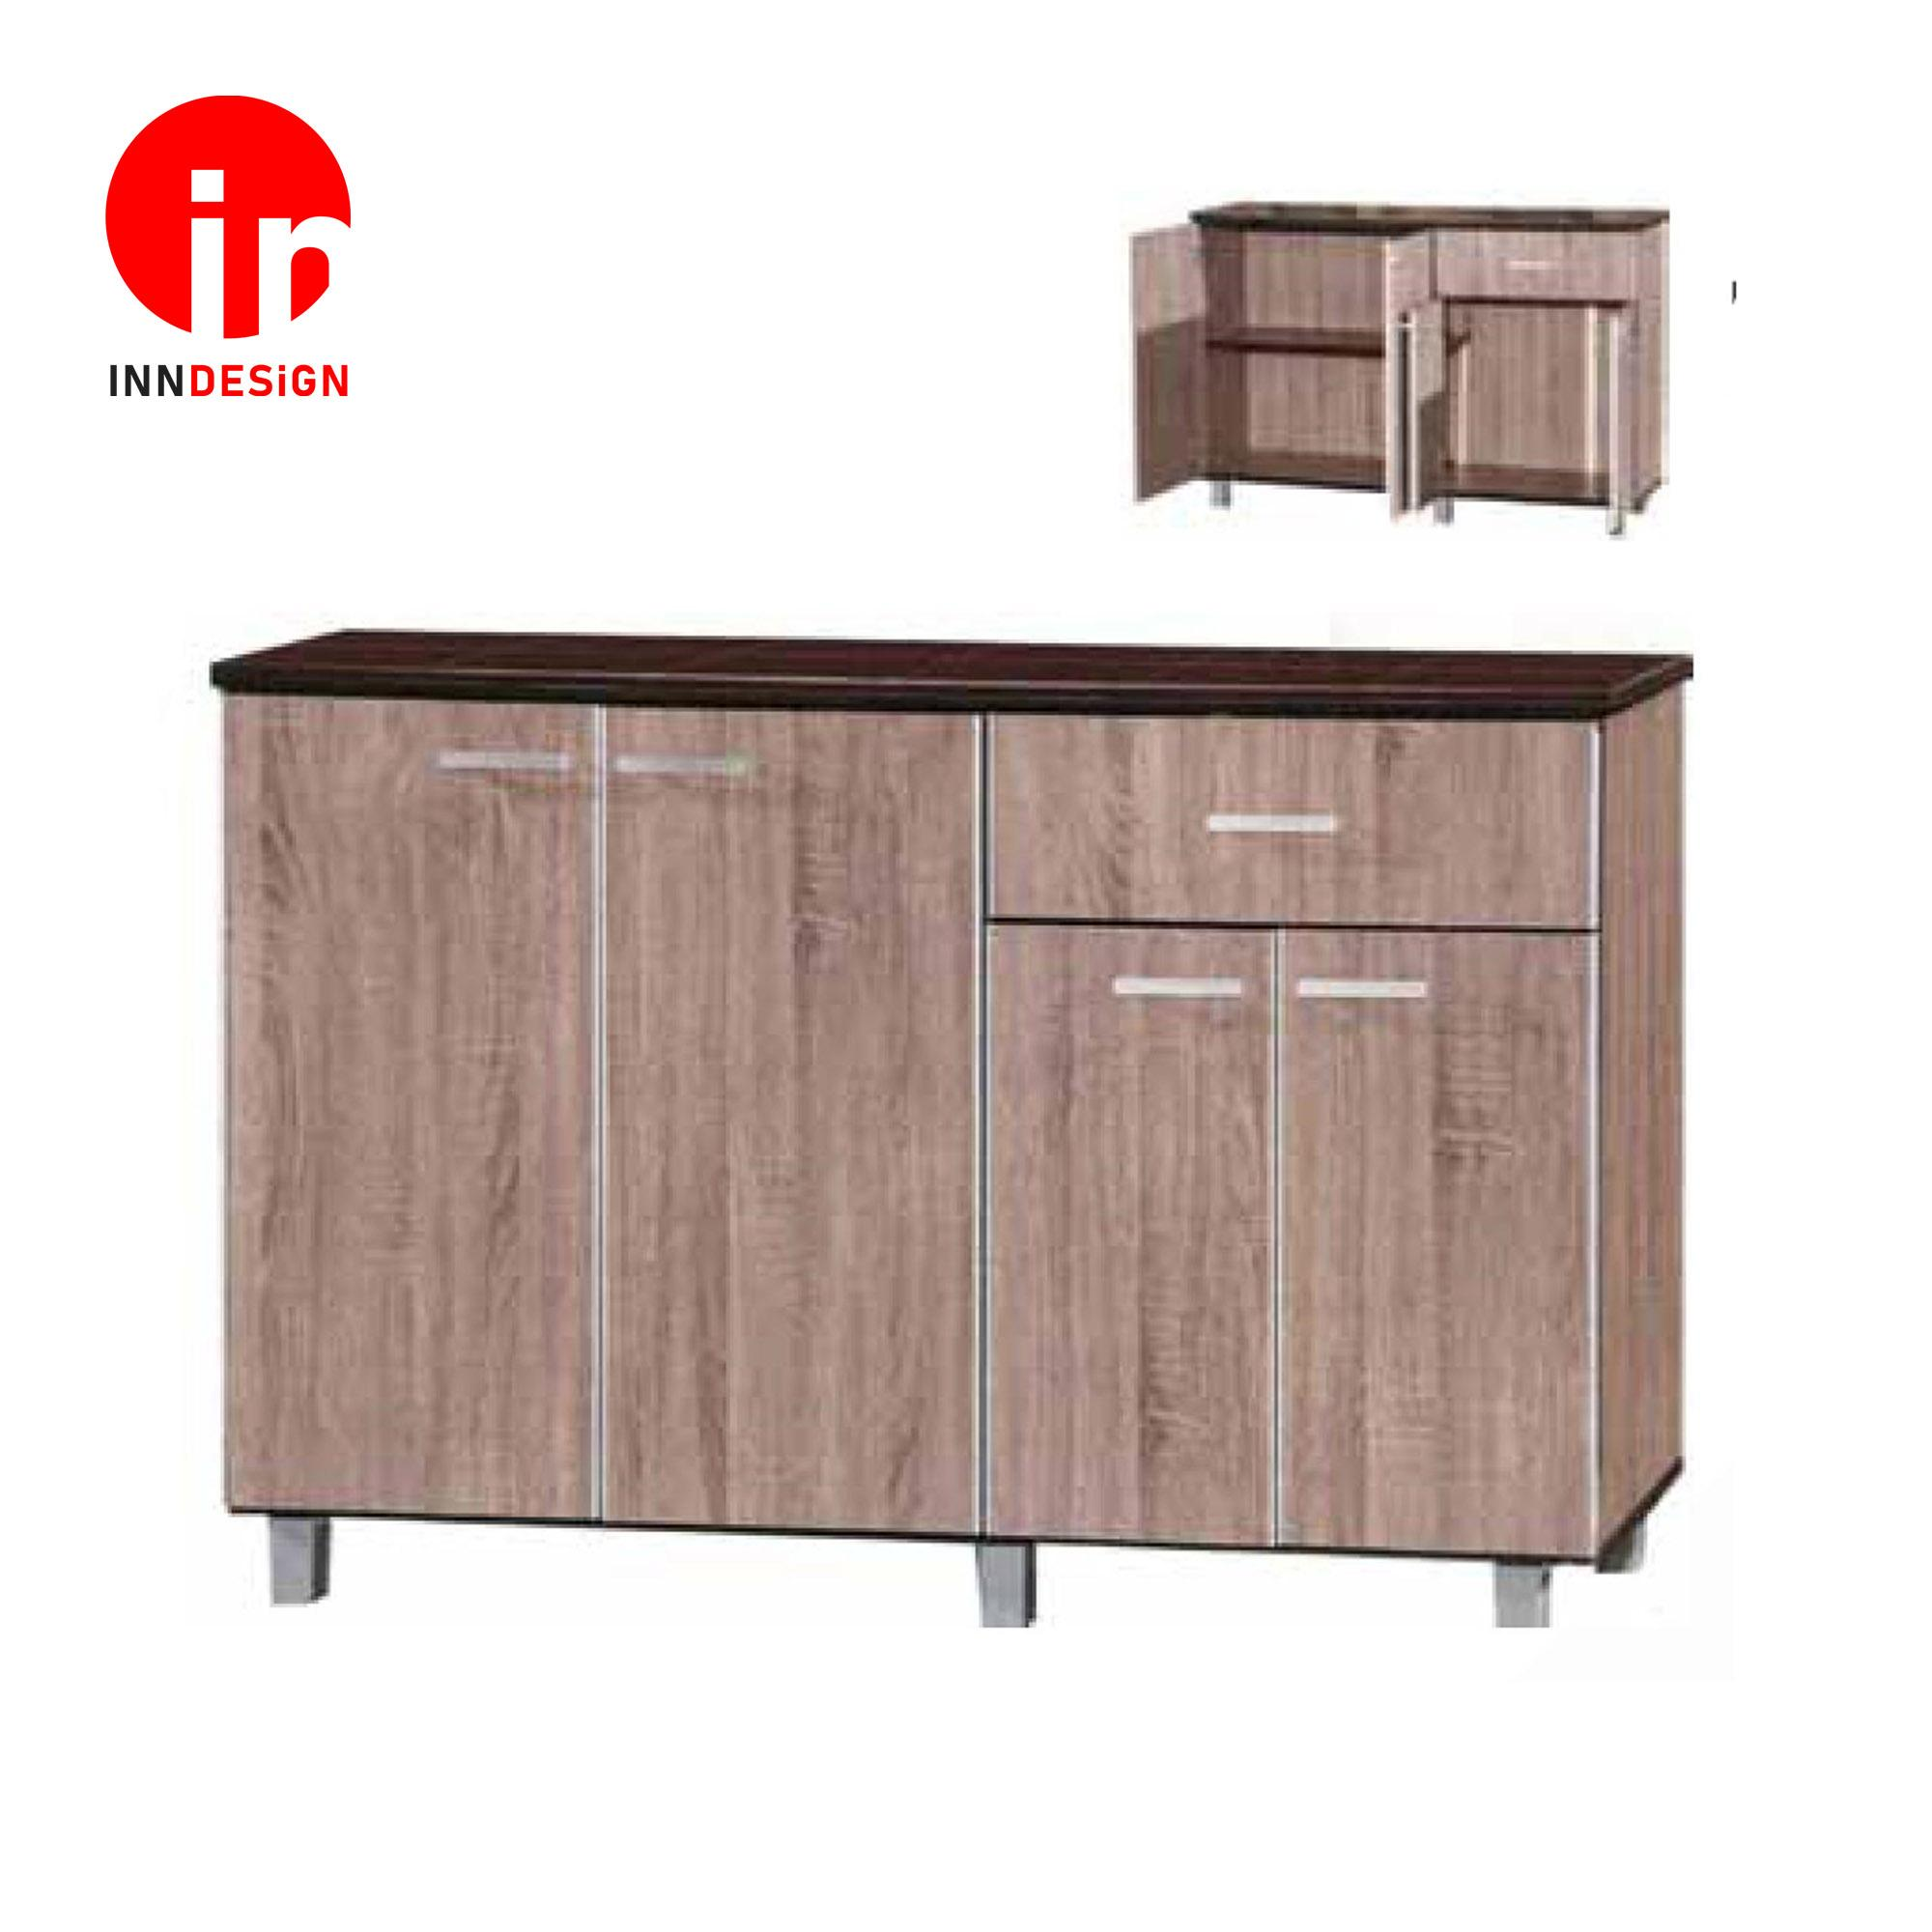 Cassiva 4 Doors With Drawer Kitchen Cabinet (Free Delivery and Installation) (Dark Oak)